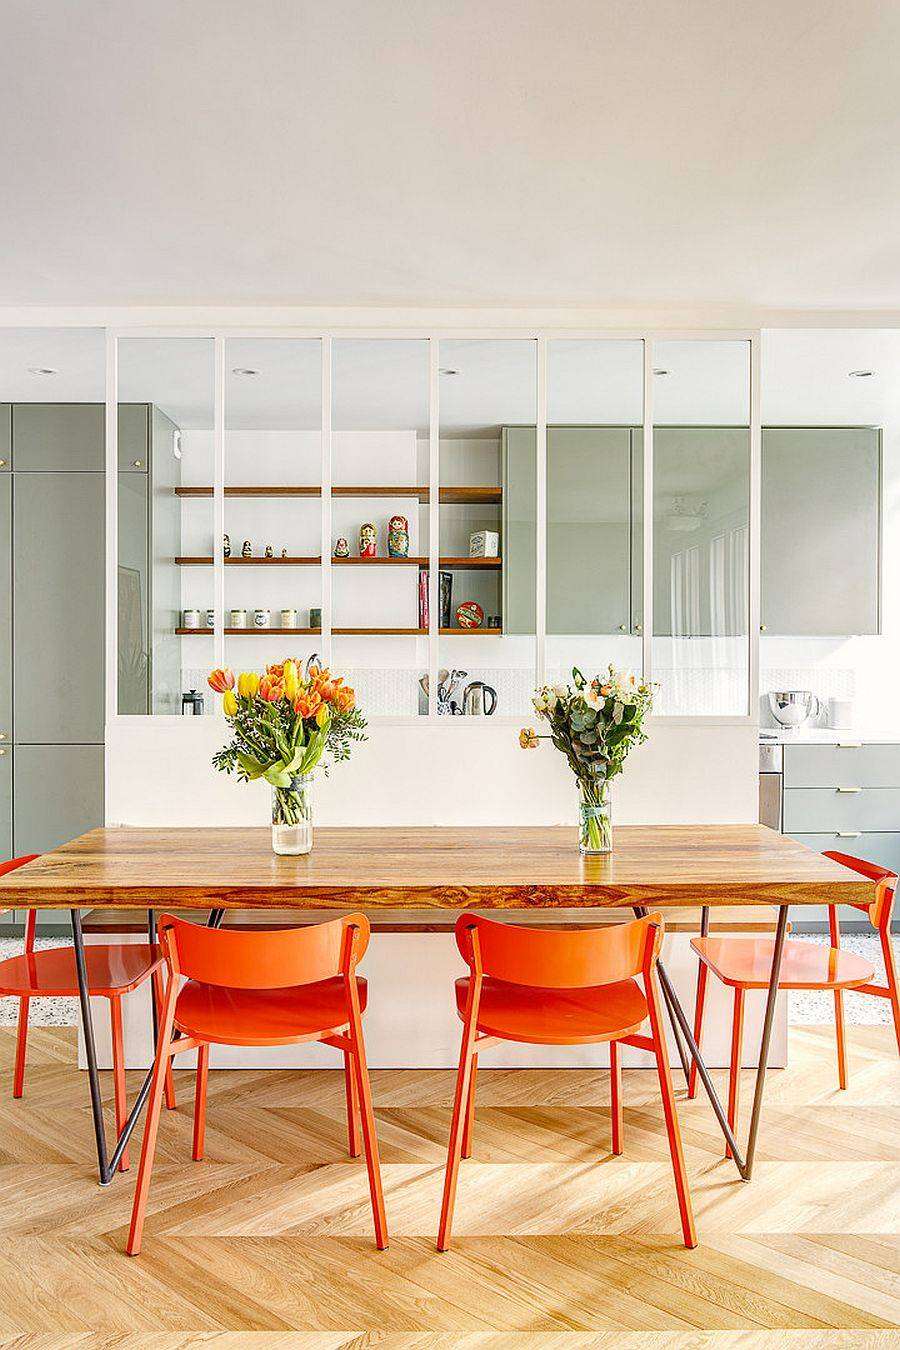 Creative partition between the dining area and kitchen delineates space